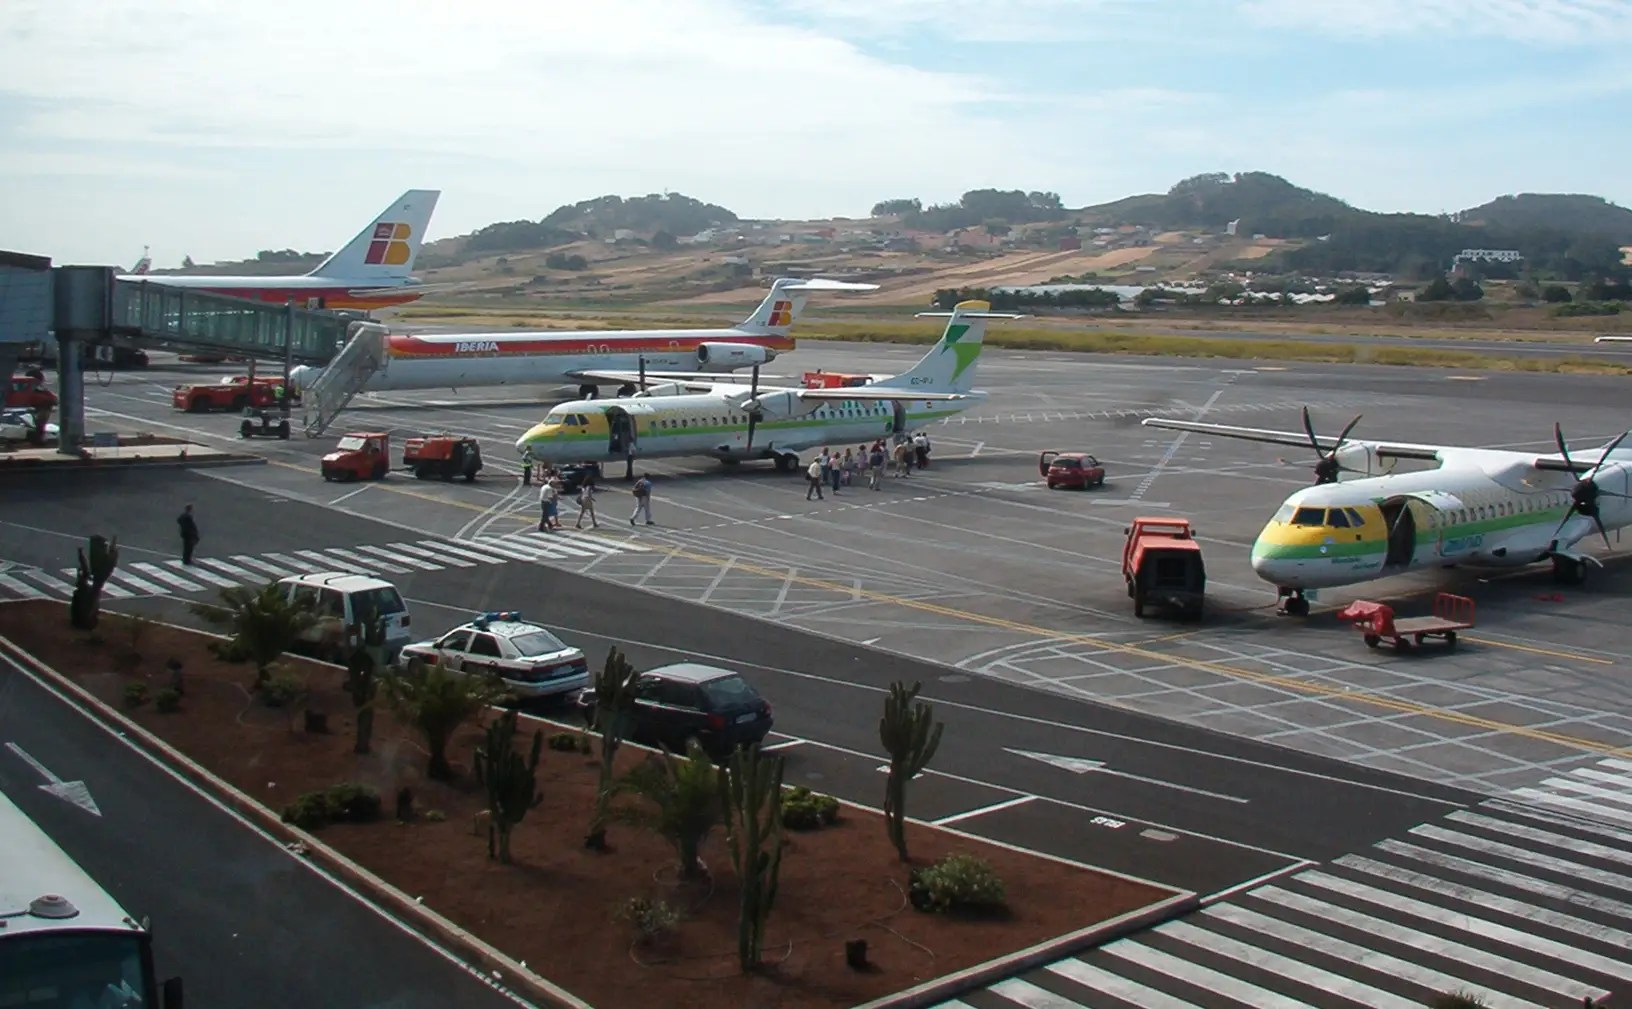 http://static4.businessinsider.com/image/53332662eab8eaac6586ebb1-1200-750/tenerife%20north%20airport%20(los%20rodeos).jpg